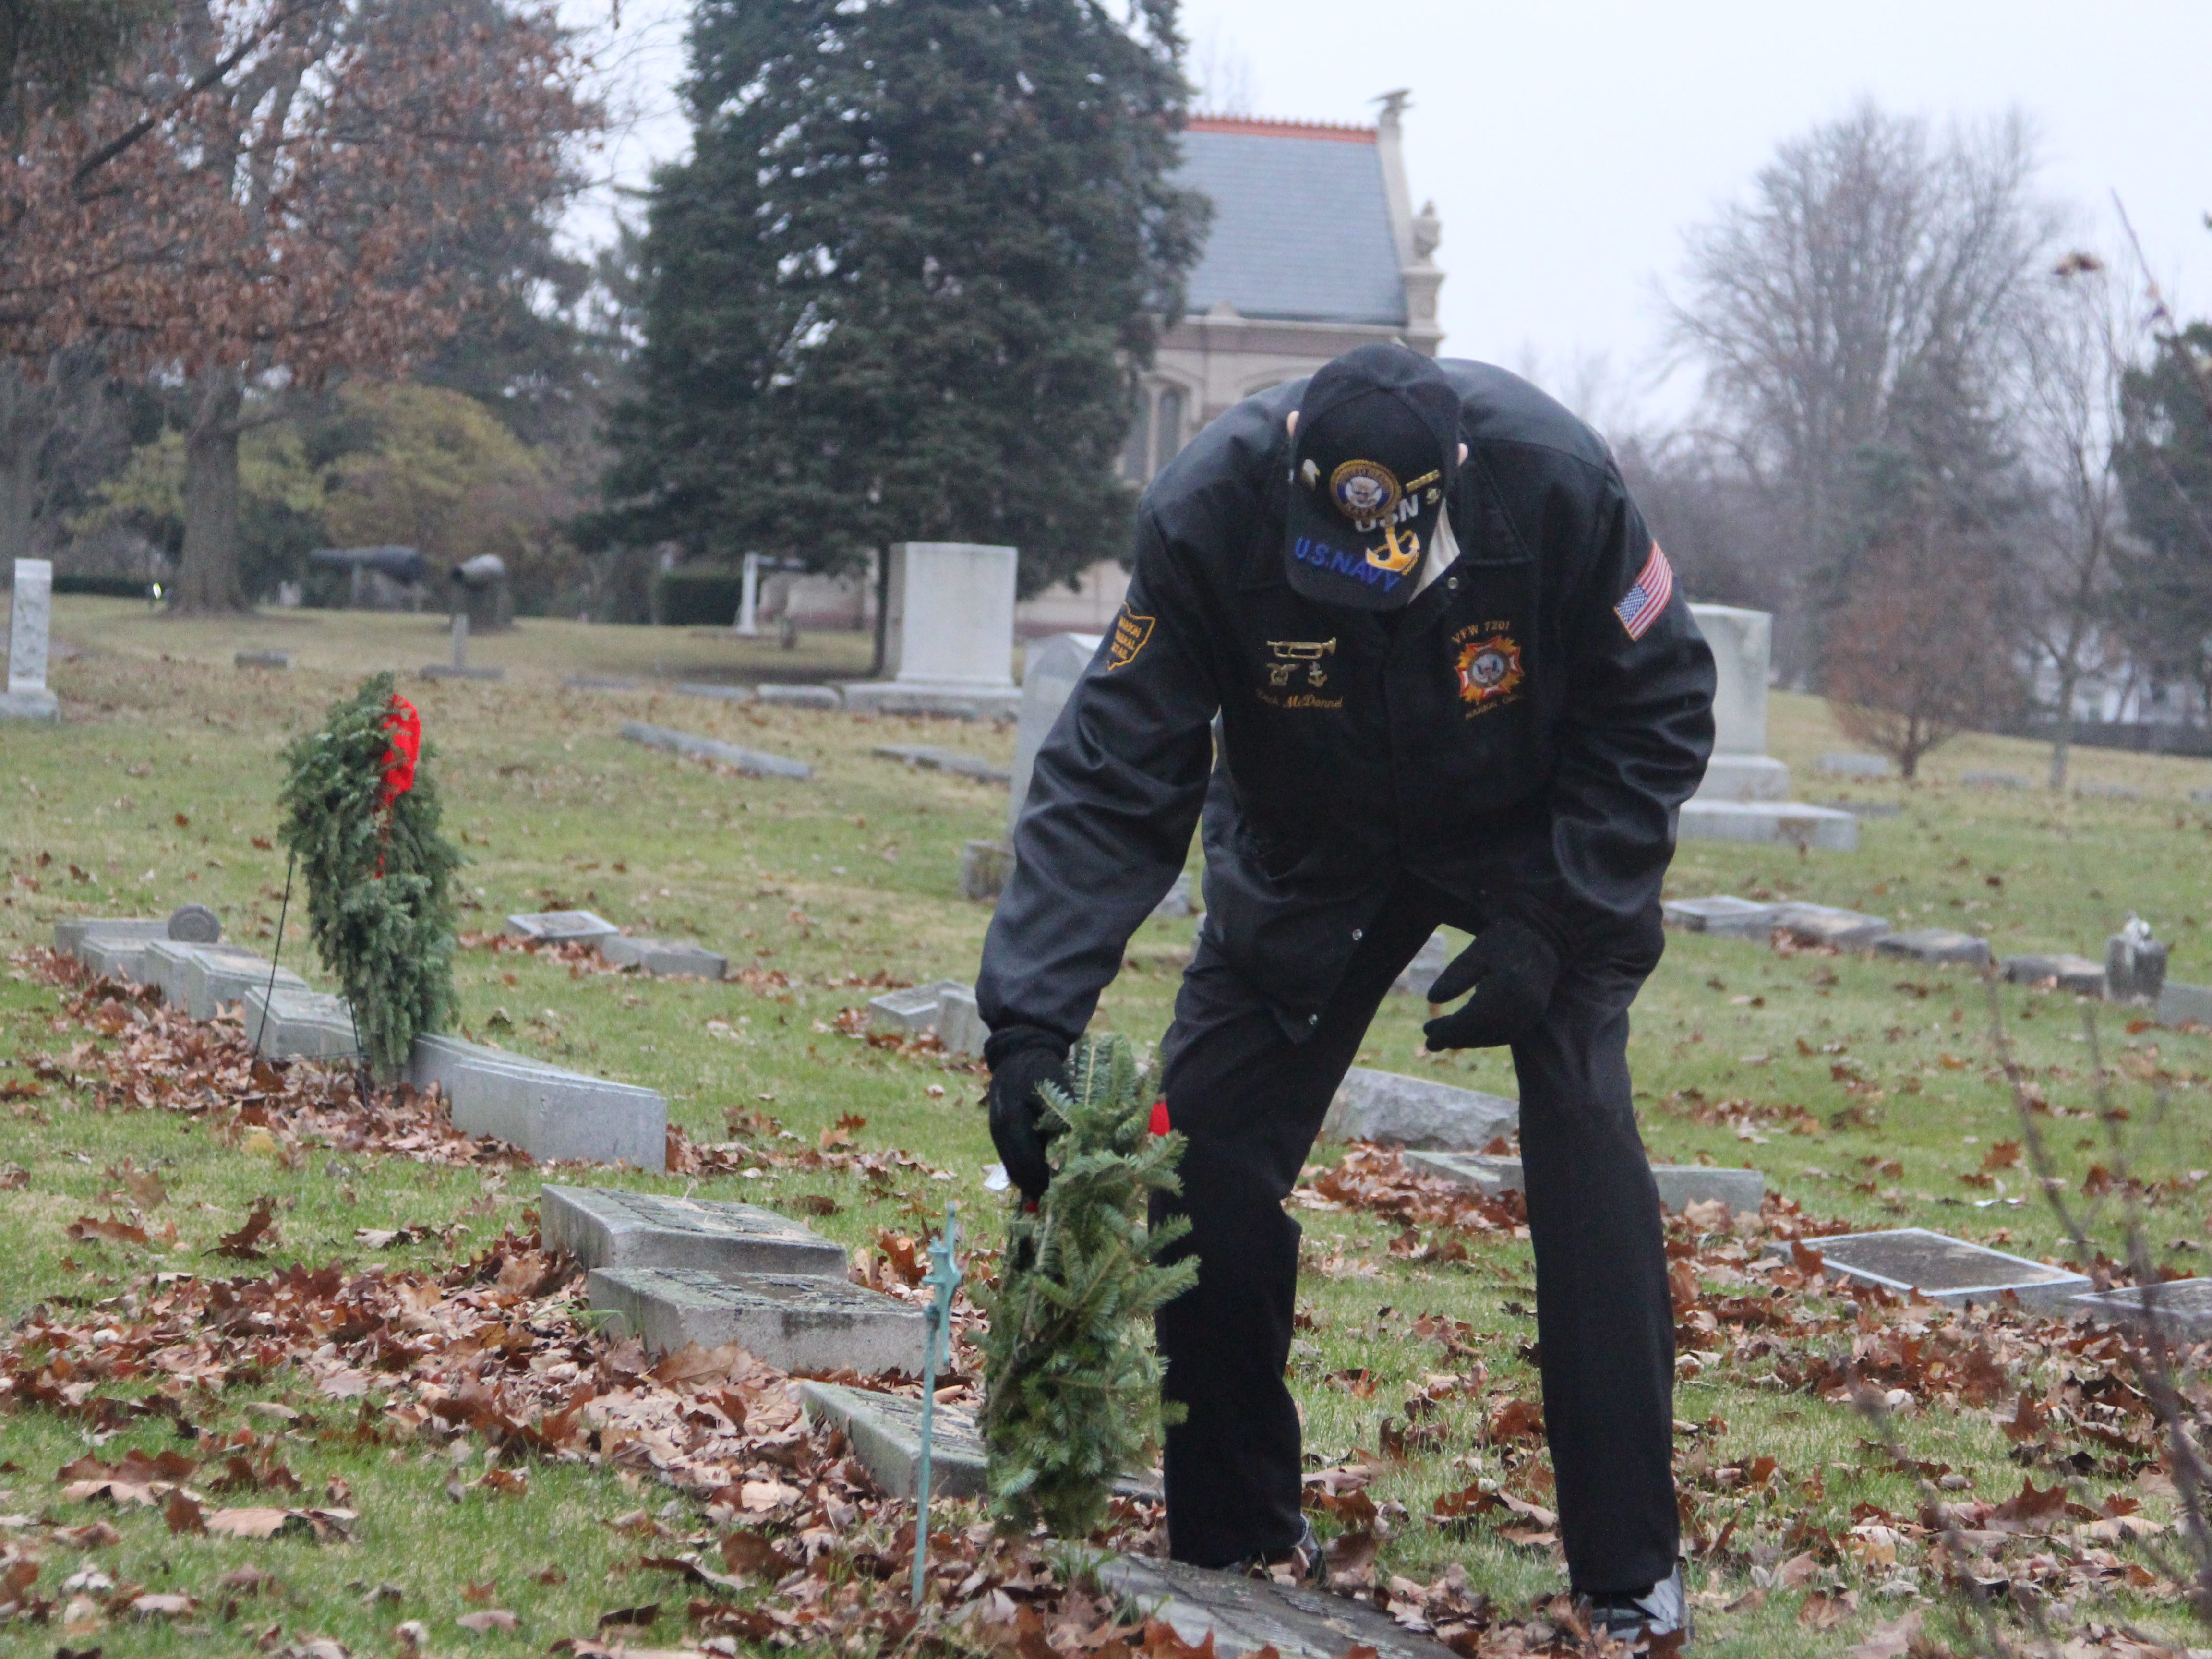 Dick McDannel, a veteran of the Korean War, lays wreaths at the graves of fellow military veterans Saturday at Marion Cemetery. He was among a band of local volunteers who took part in Wreaths Across America, a nationwide effort to honor military veterans around the holidays.